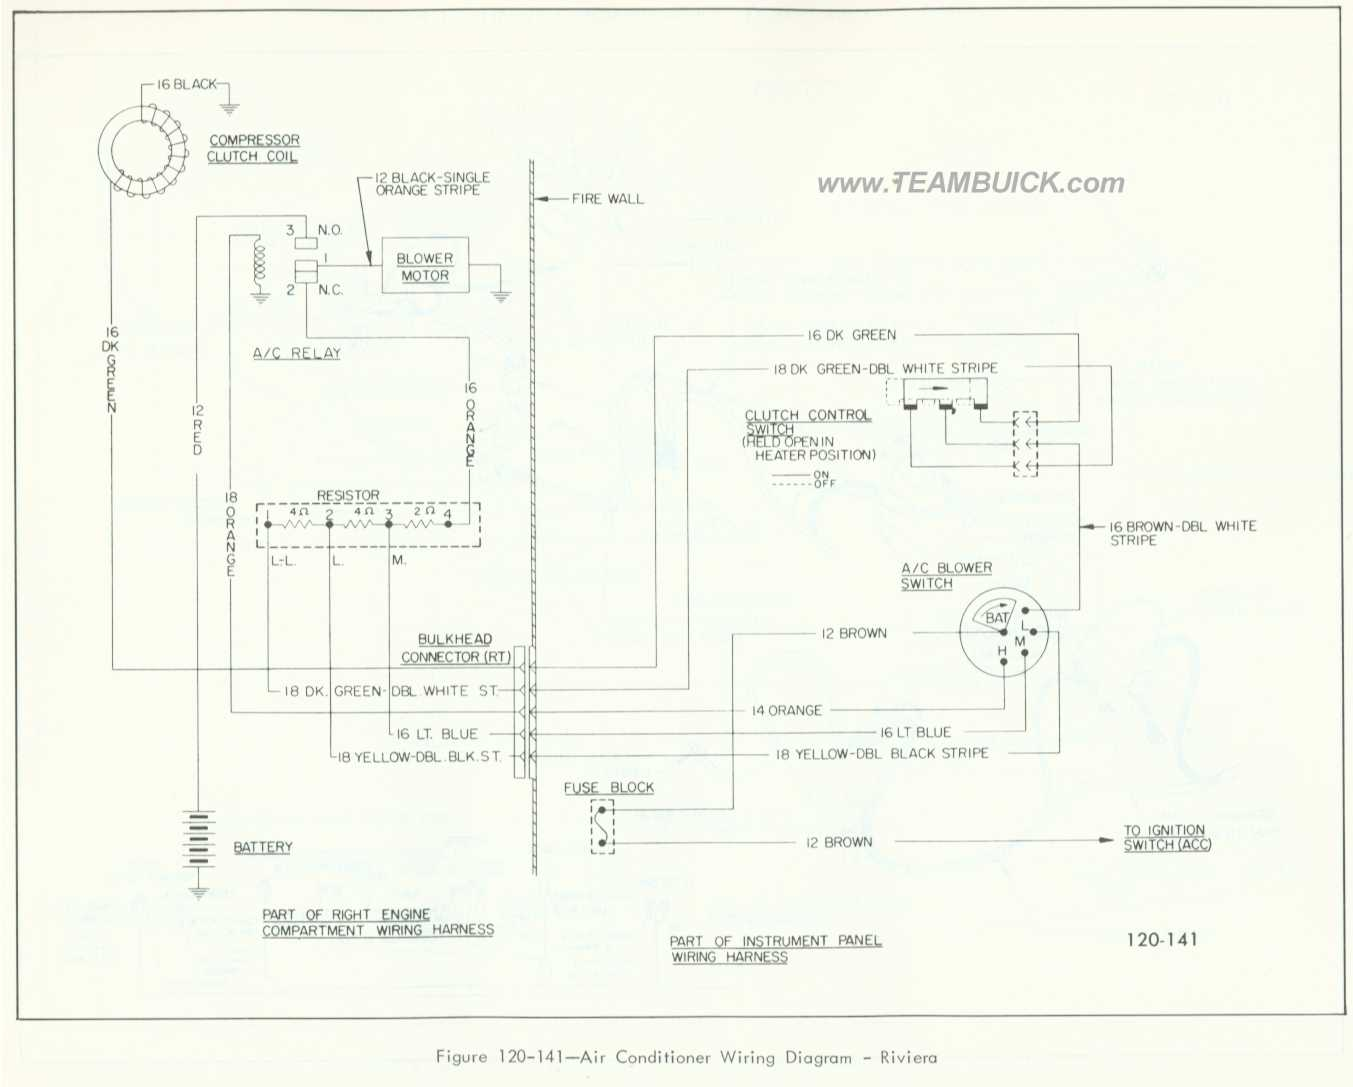 1966 Buick Riviera, Air Conditioner Wiring Diagram